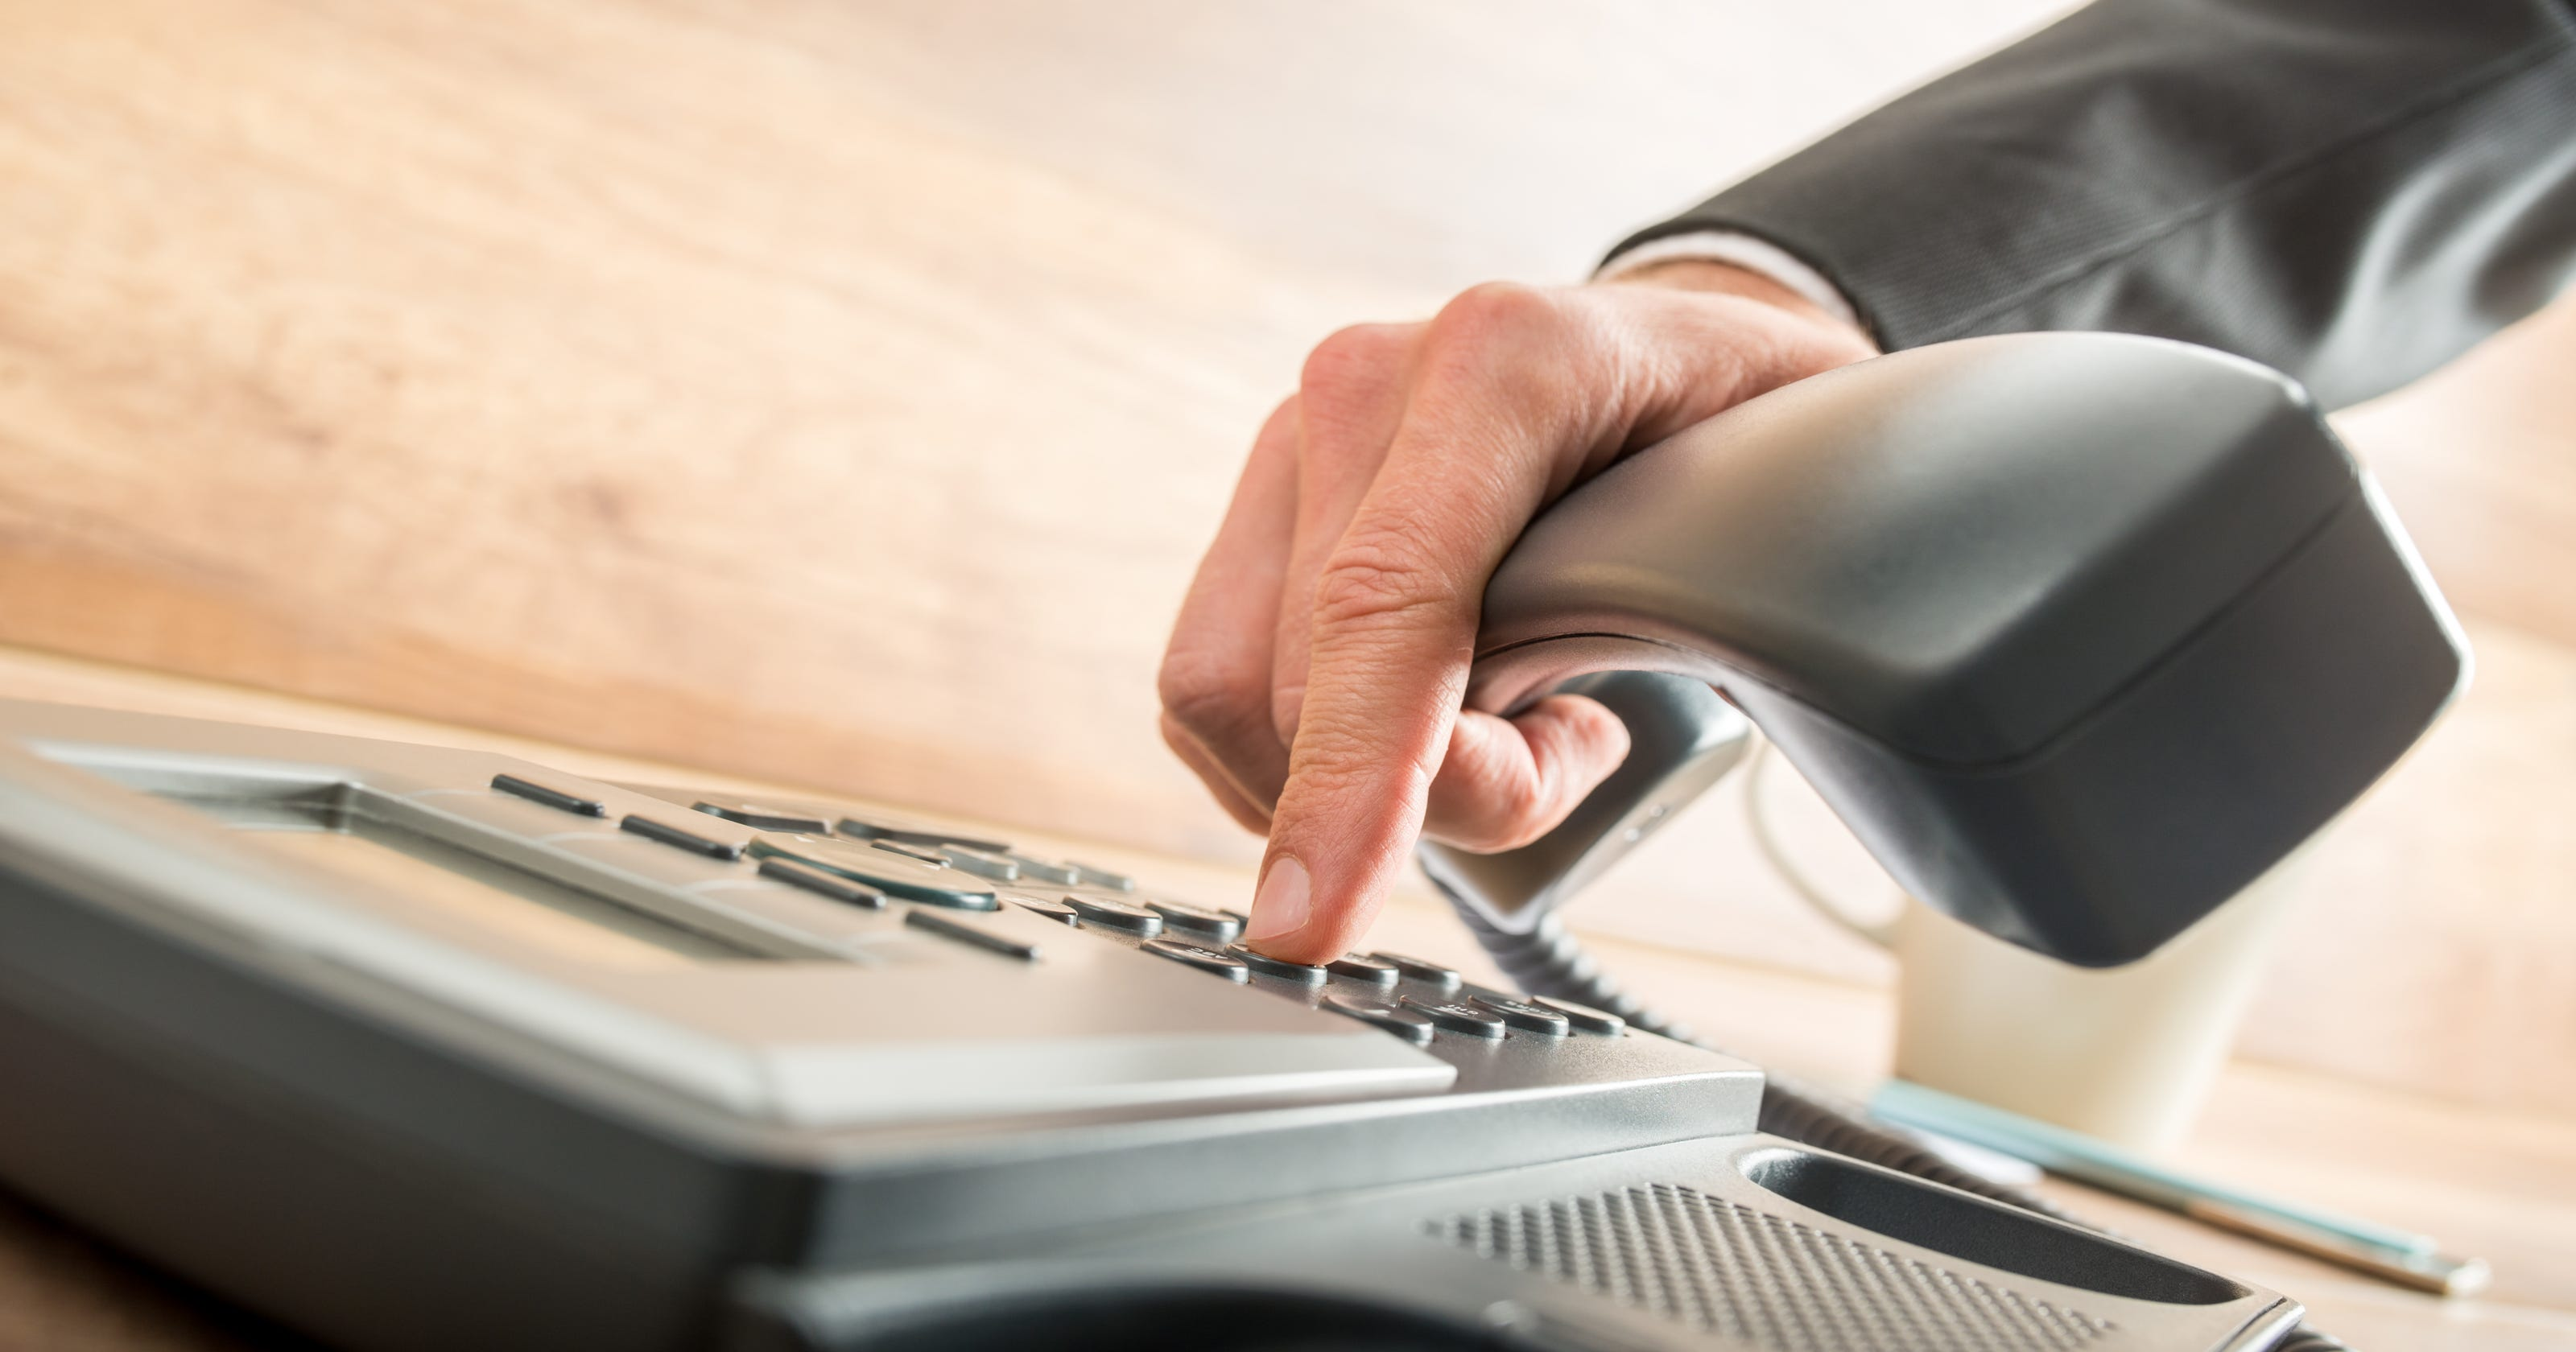 Don't say 'Yes' when robocall scam rings